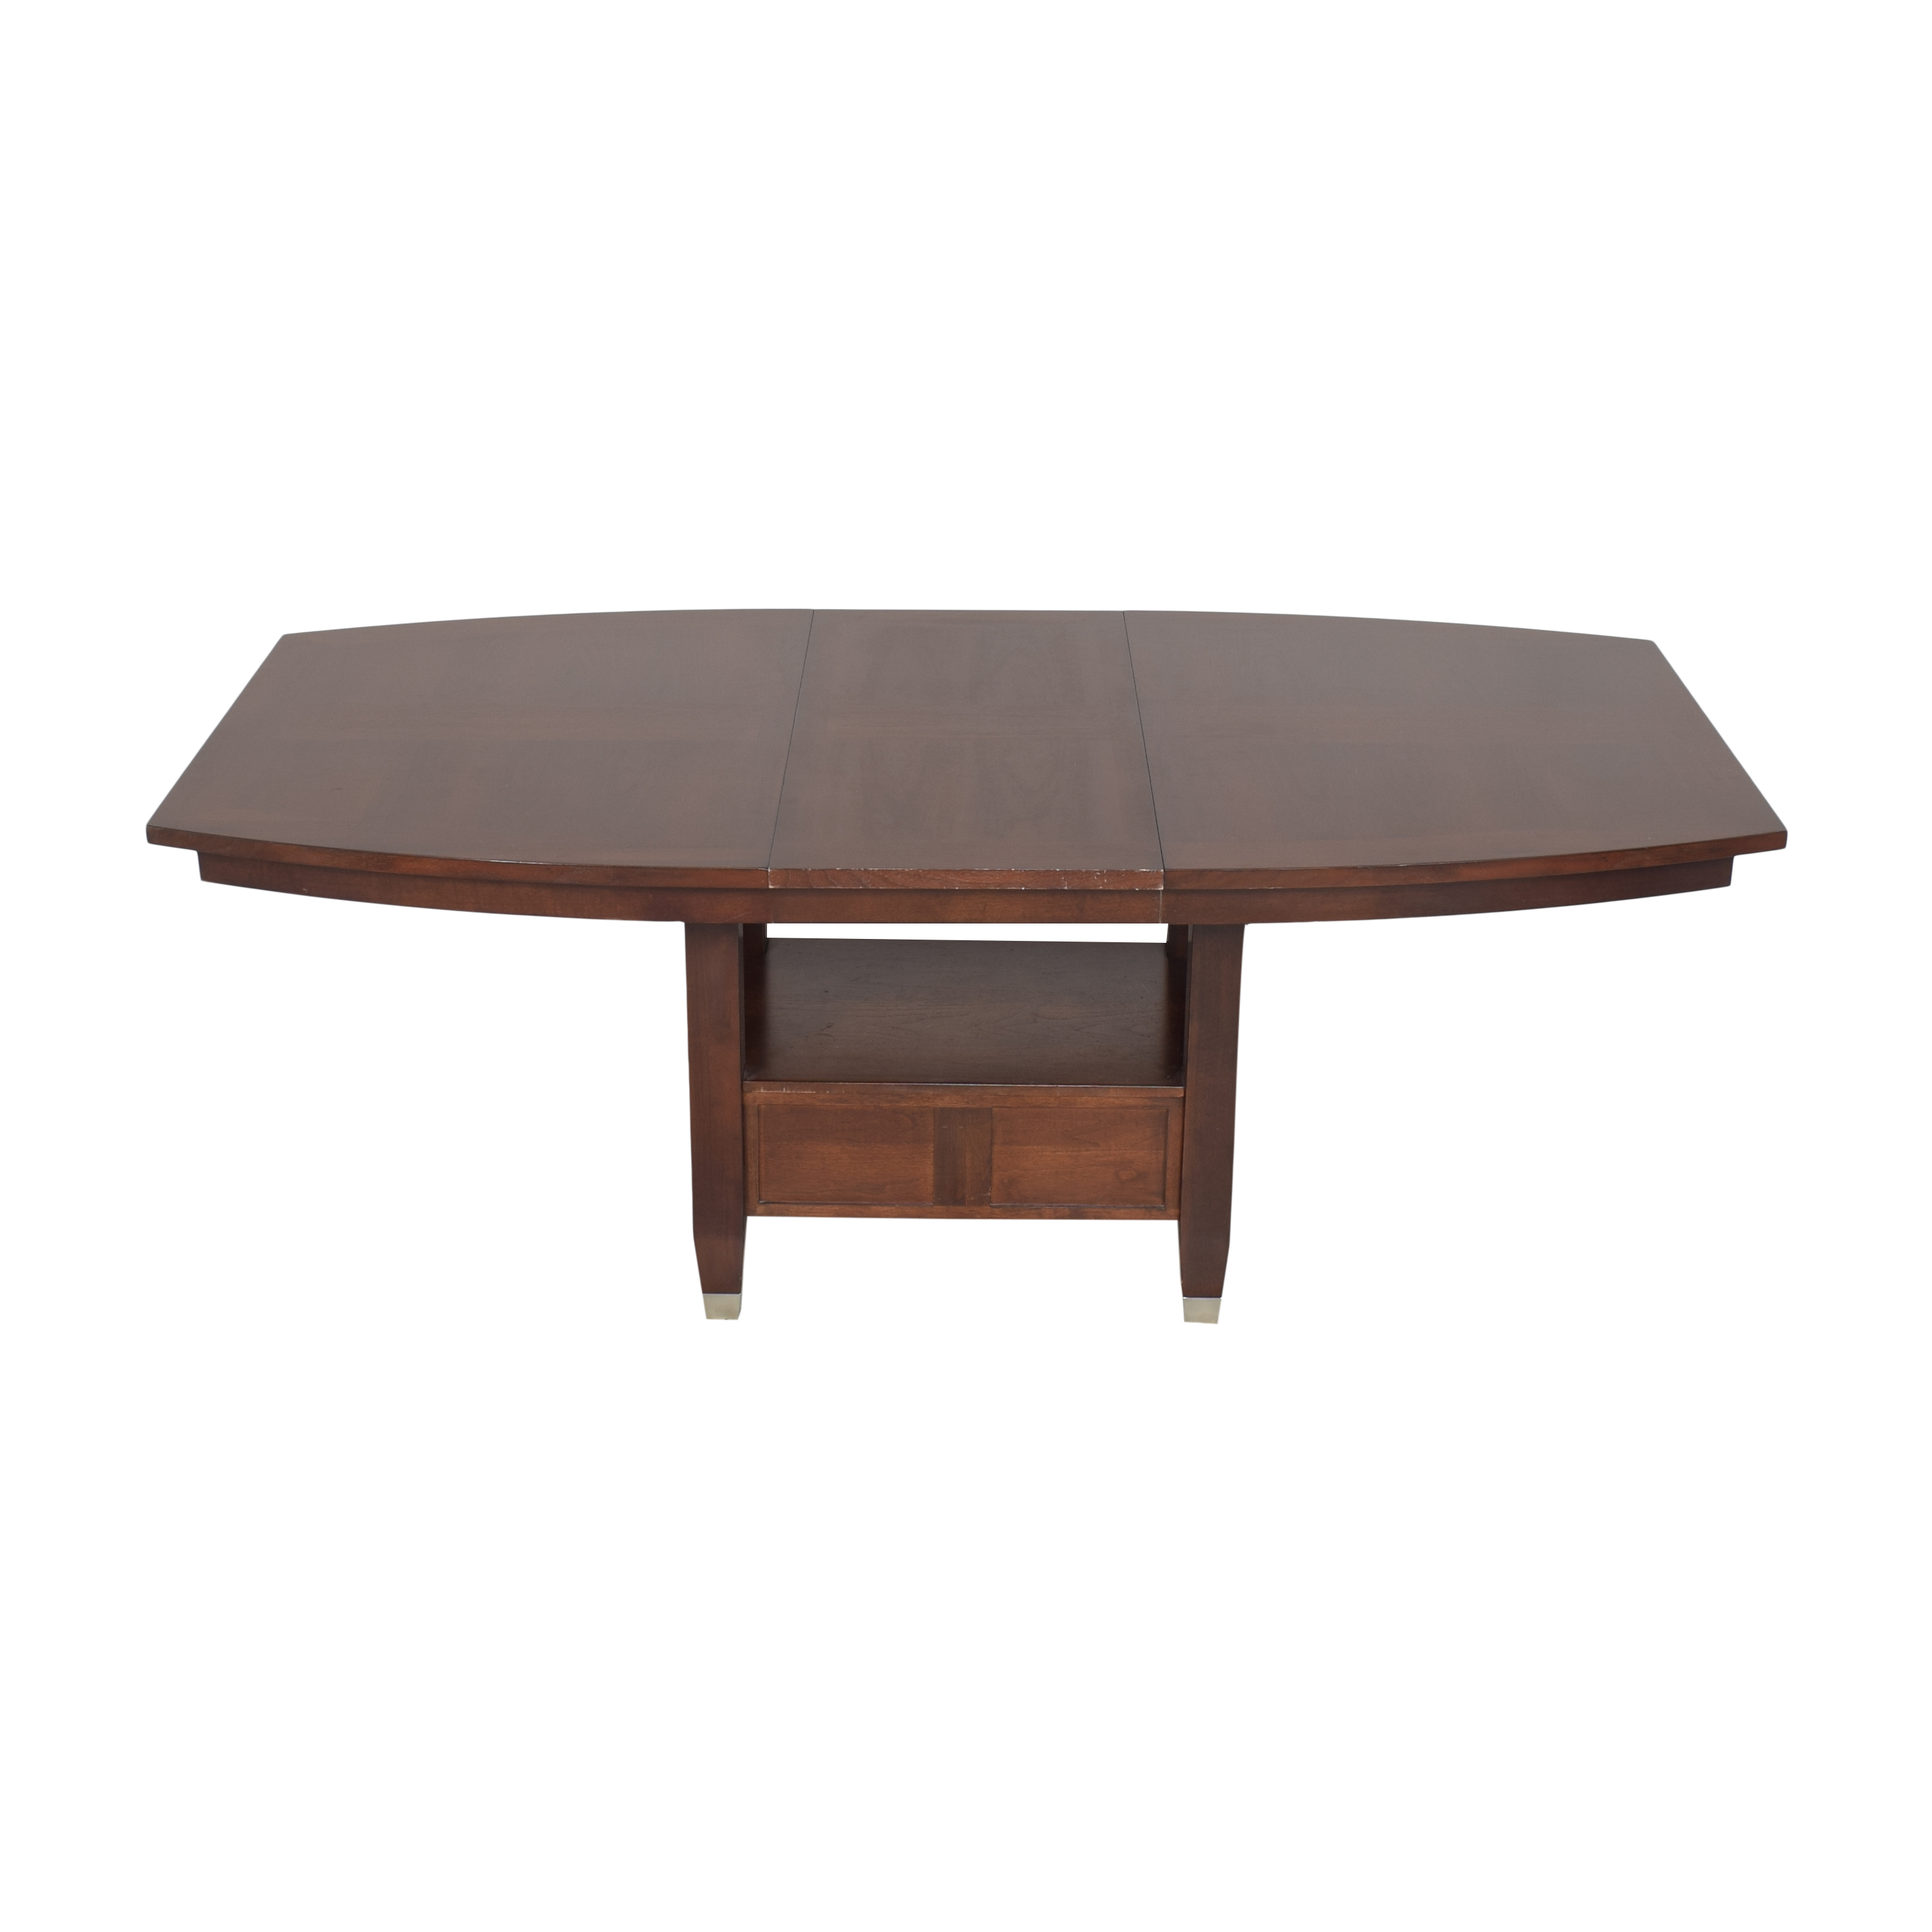 Broyhill Furniture Broyhill Furniture Extendable Dining Table coupon